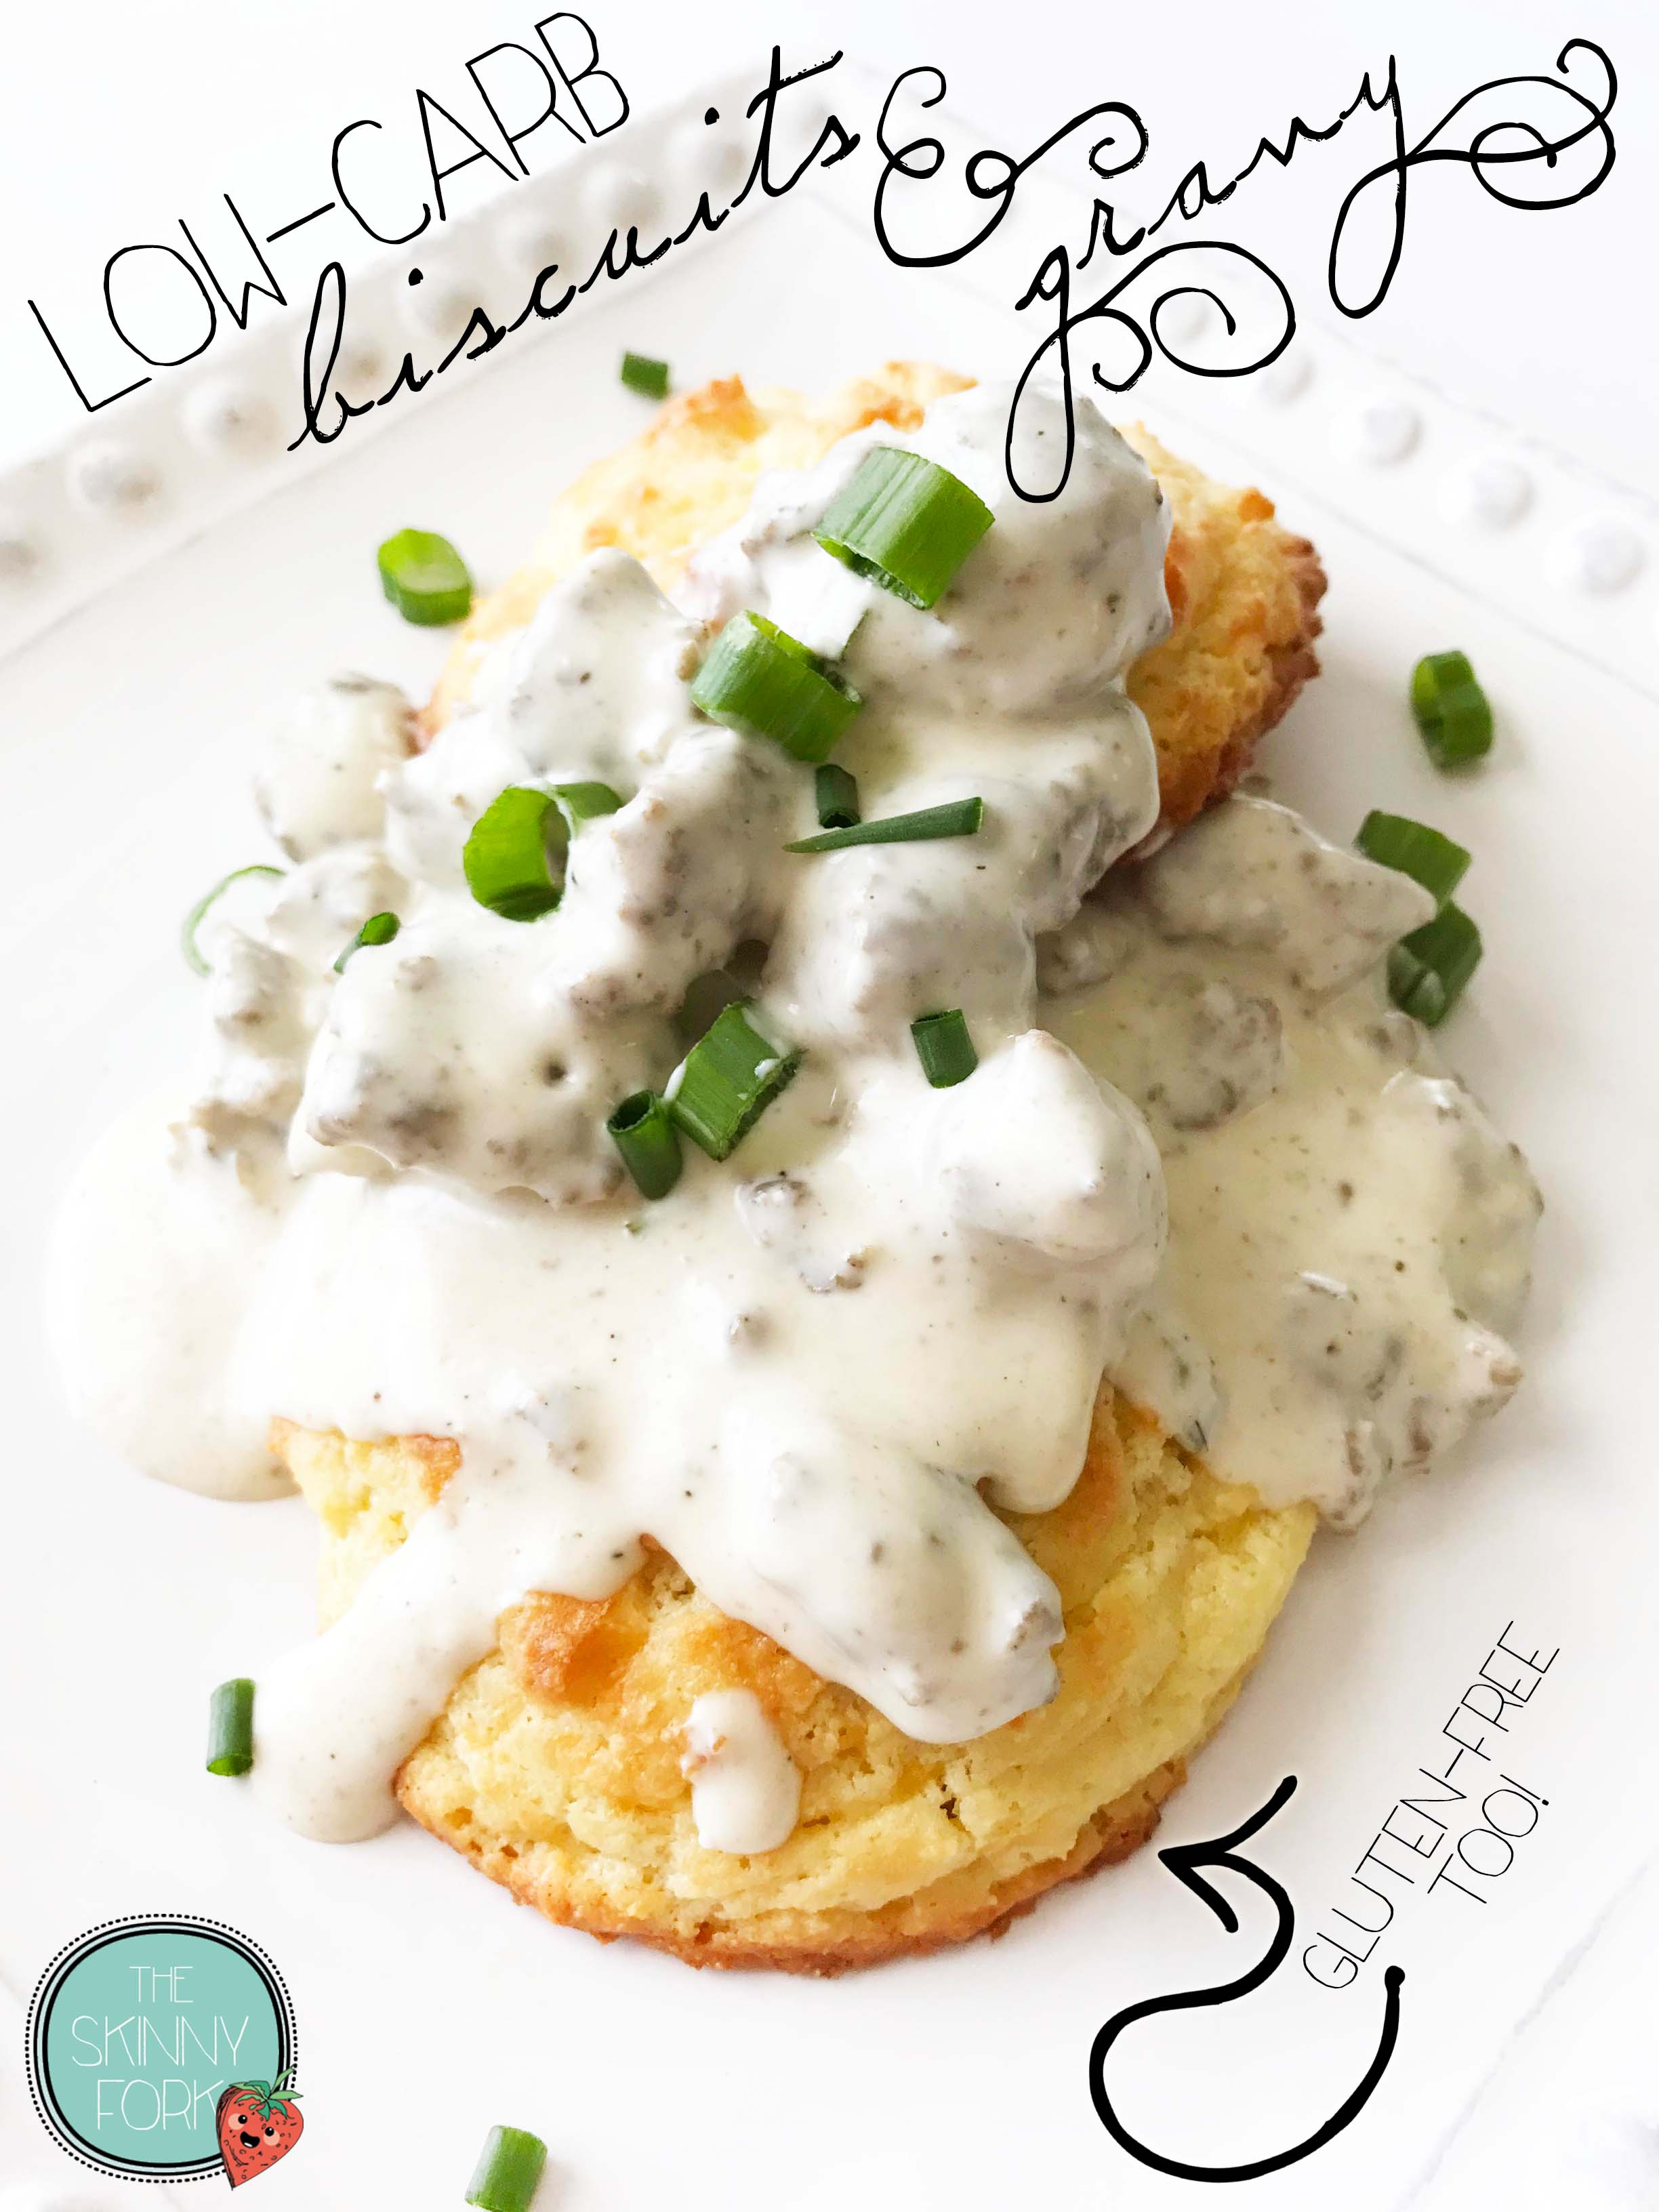 low-carb-biscuits-gravy-pin.jpg